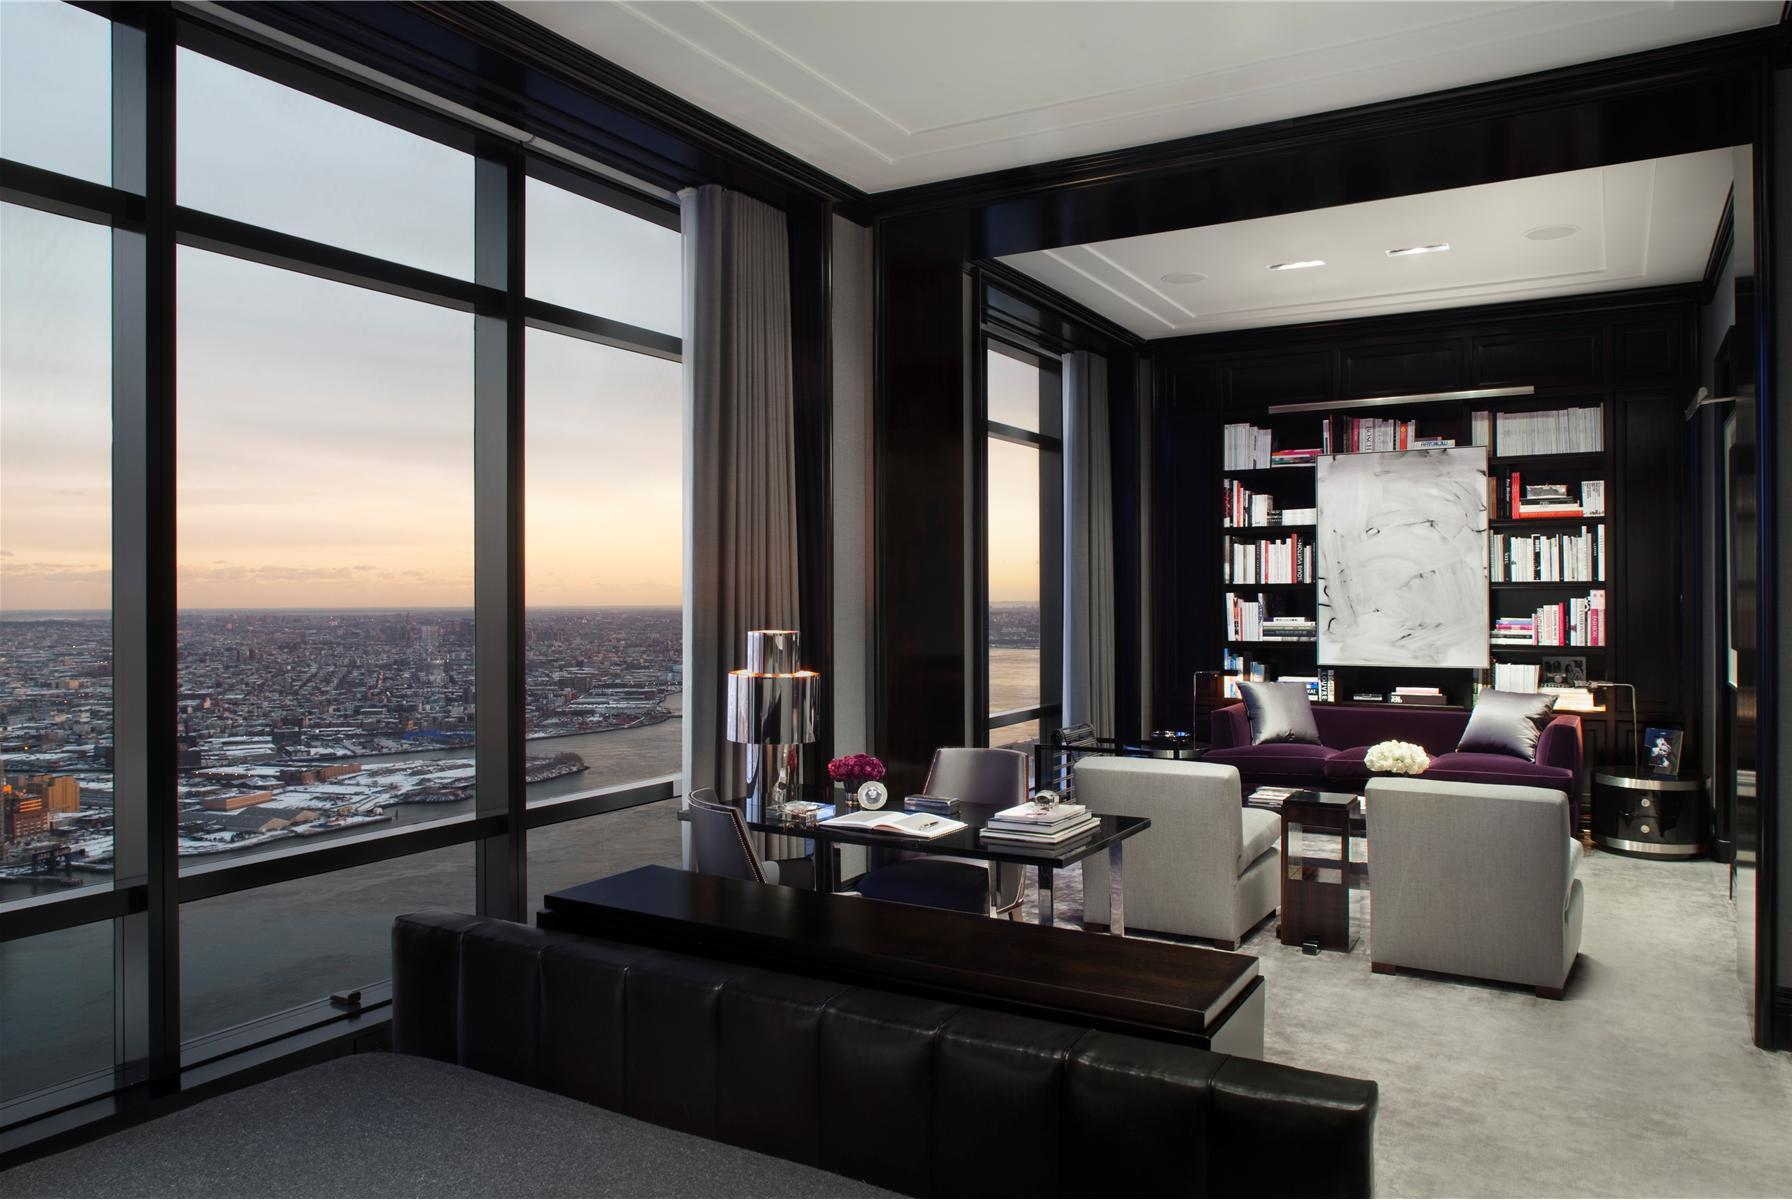 Stunning Chic Penthouse Located On The 77th Floor In The